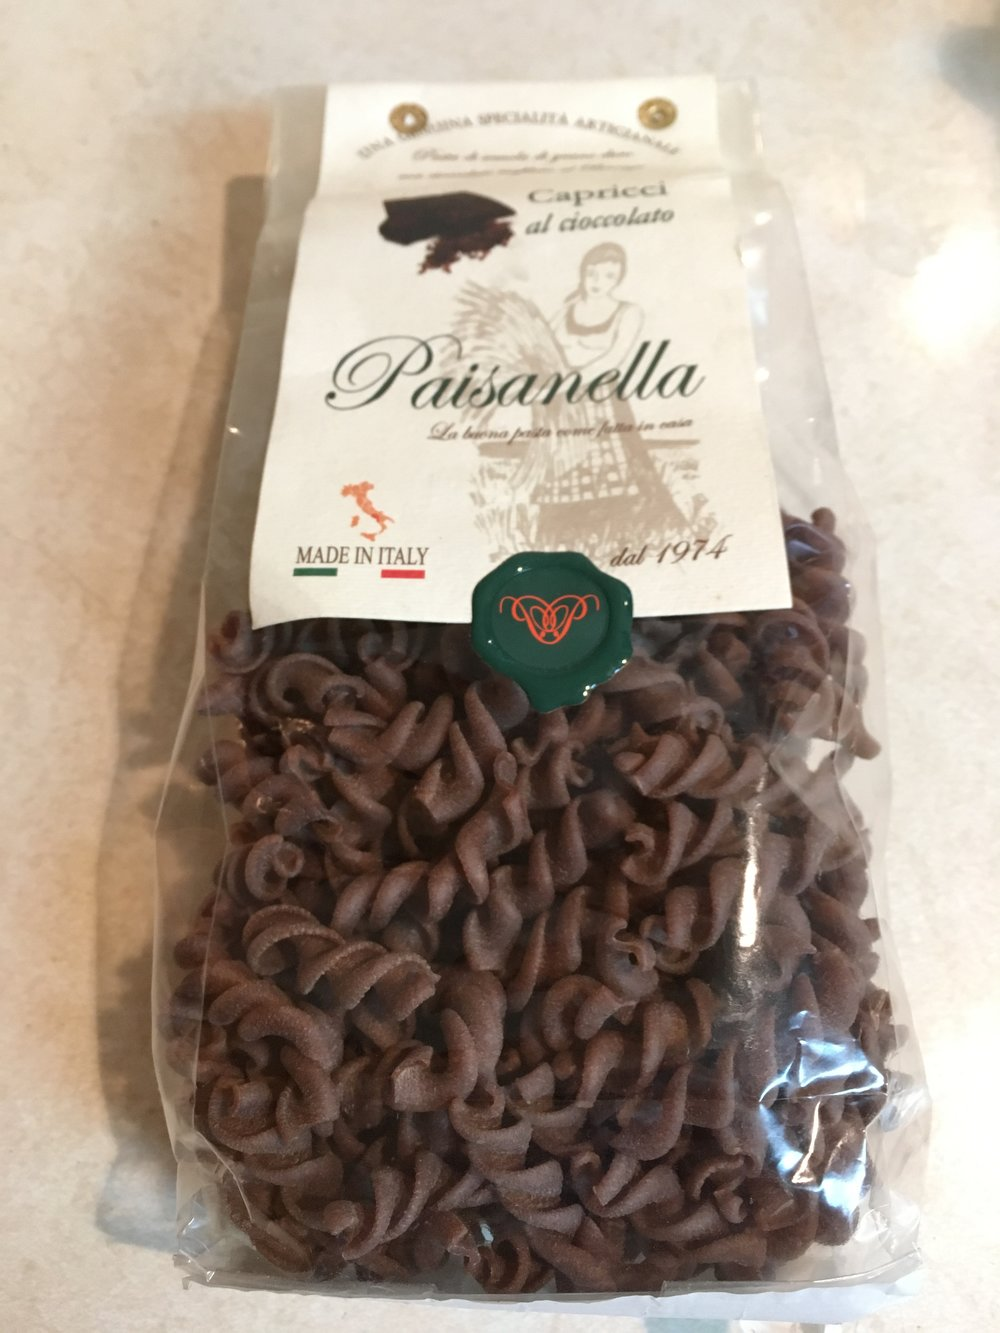 The package of chocolate pasta